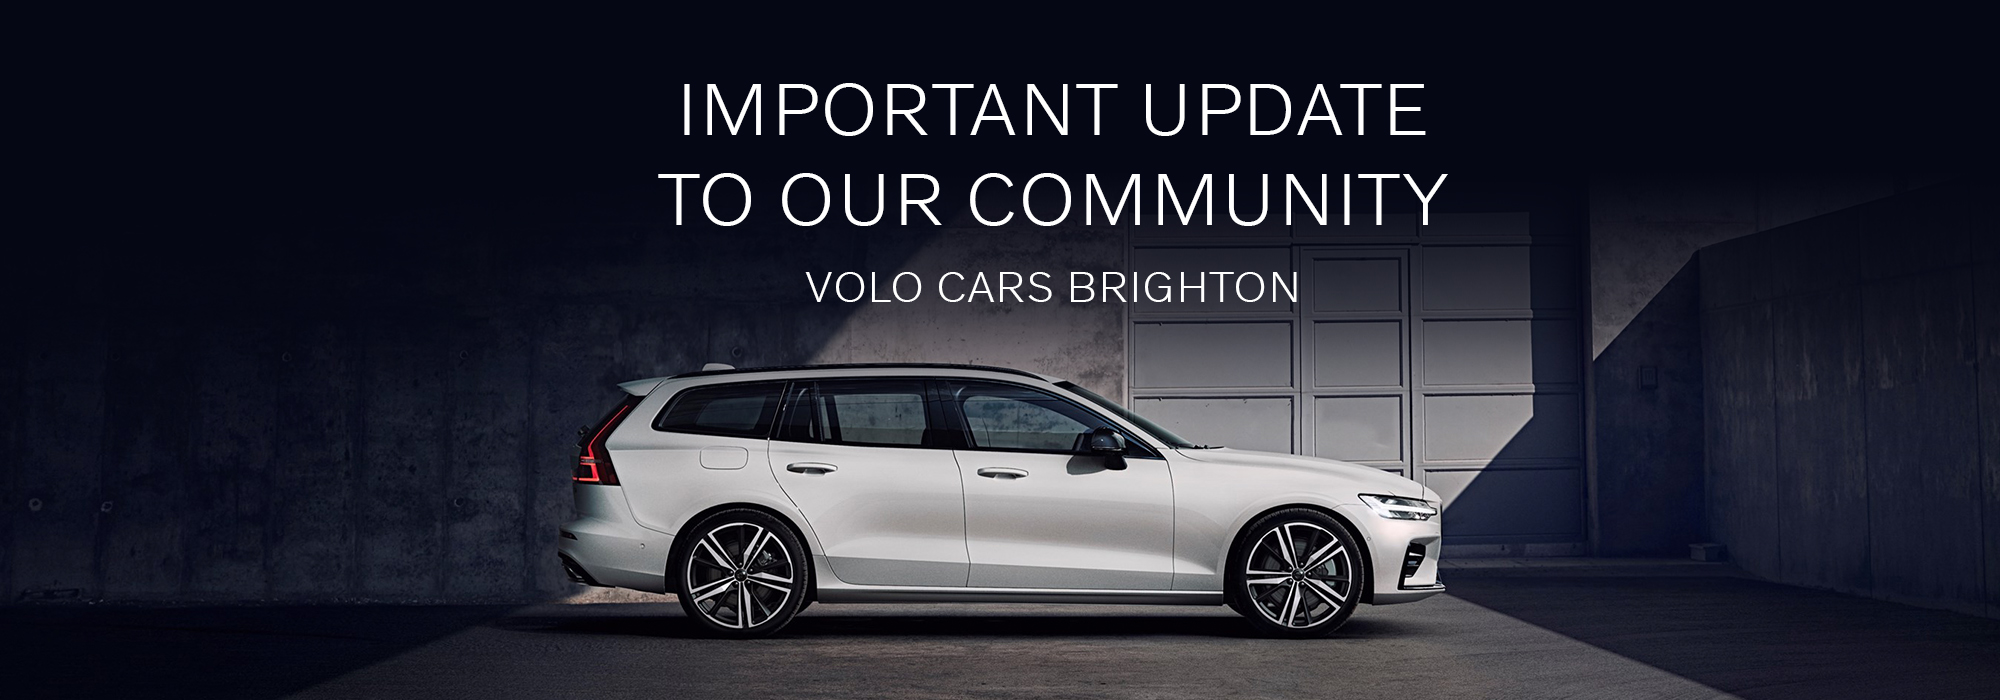 Important Update To Our Community at Volvo Cars Brighton